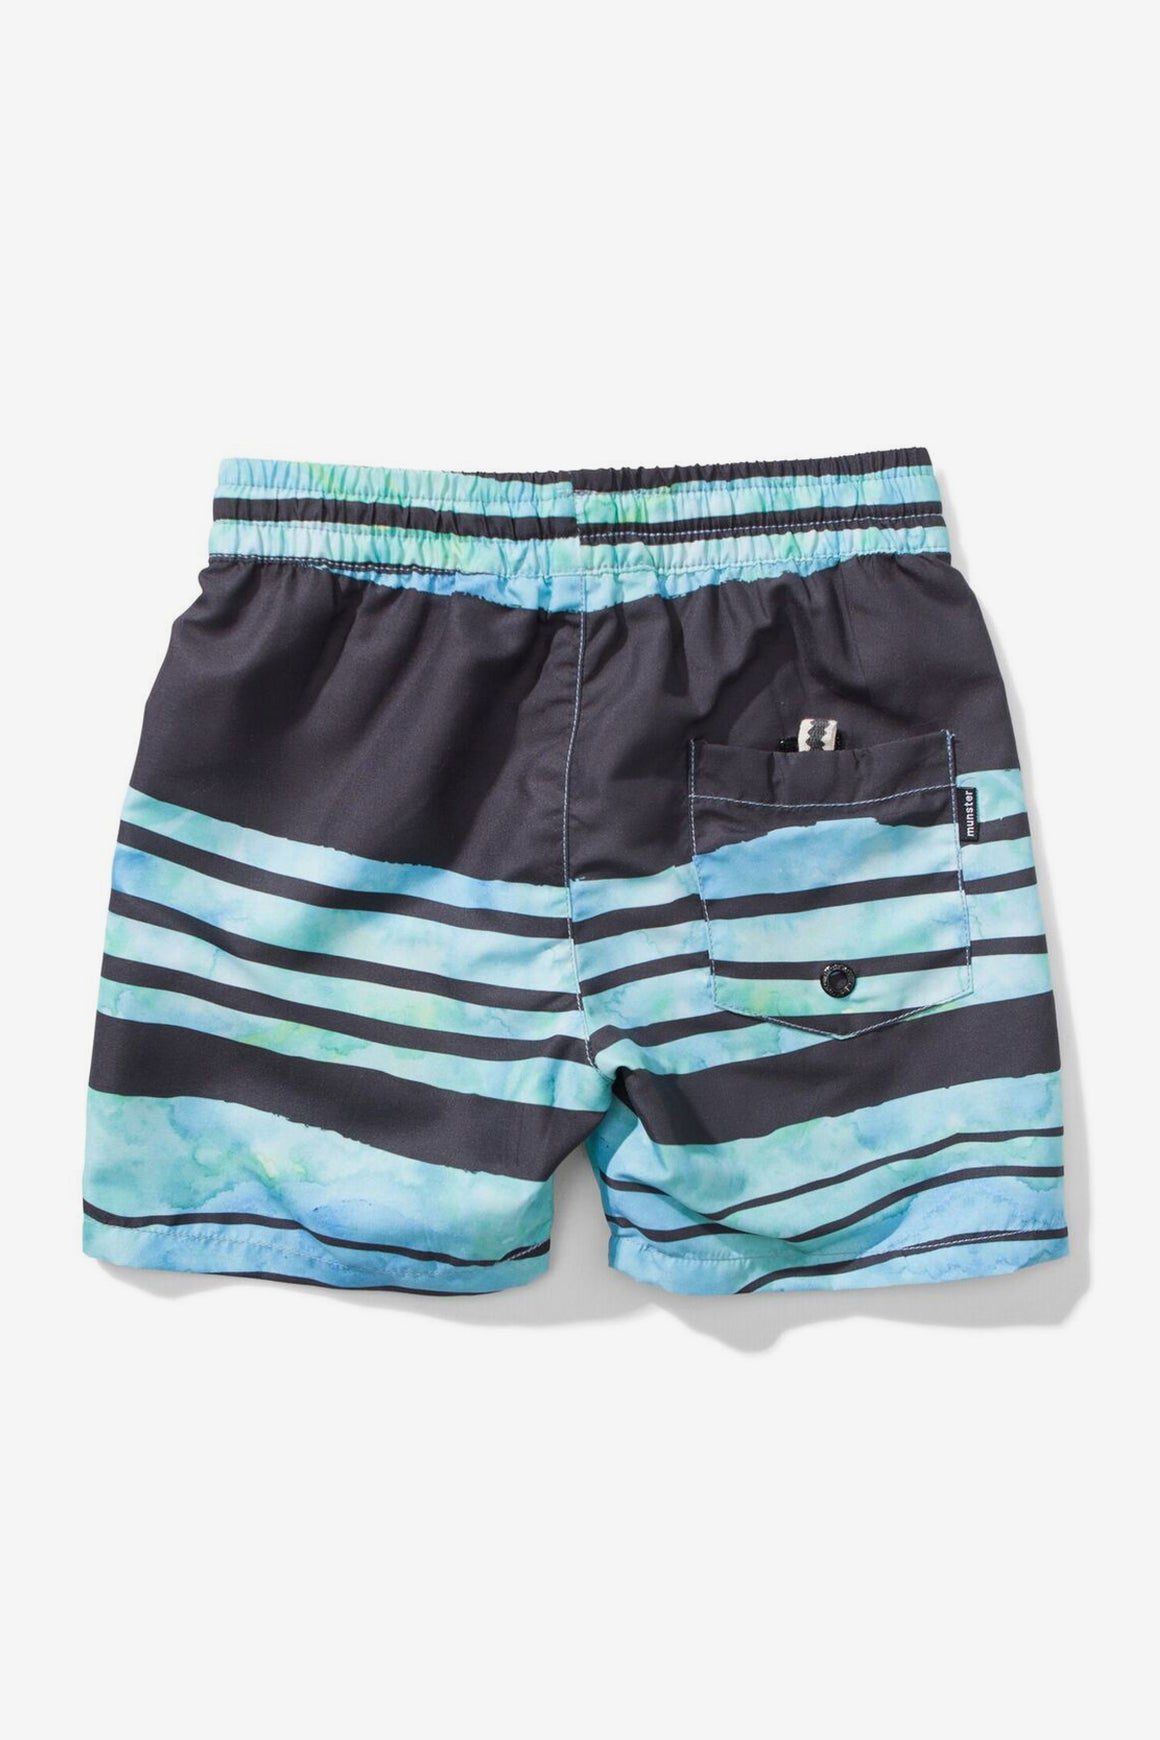 Munster Kids Sand Lines Swim Short